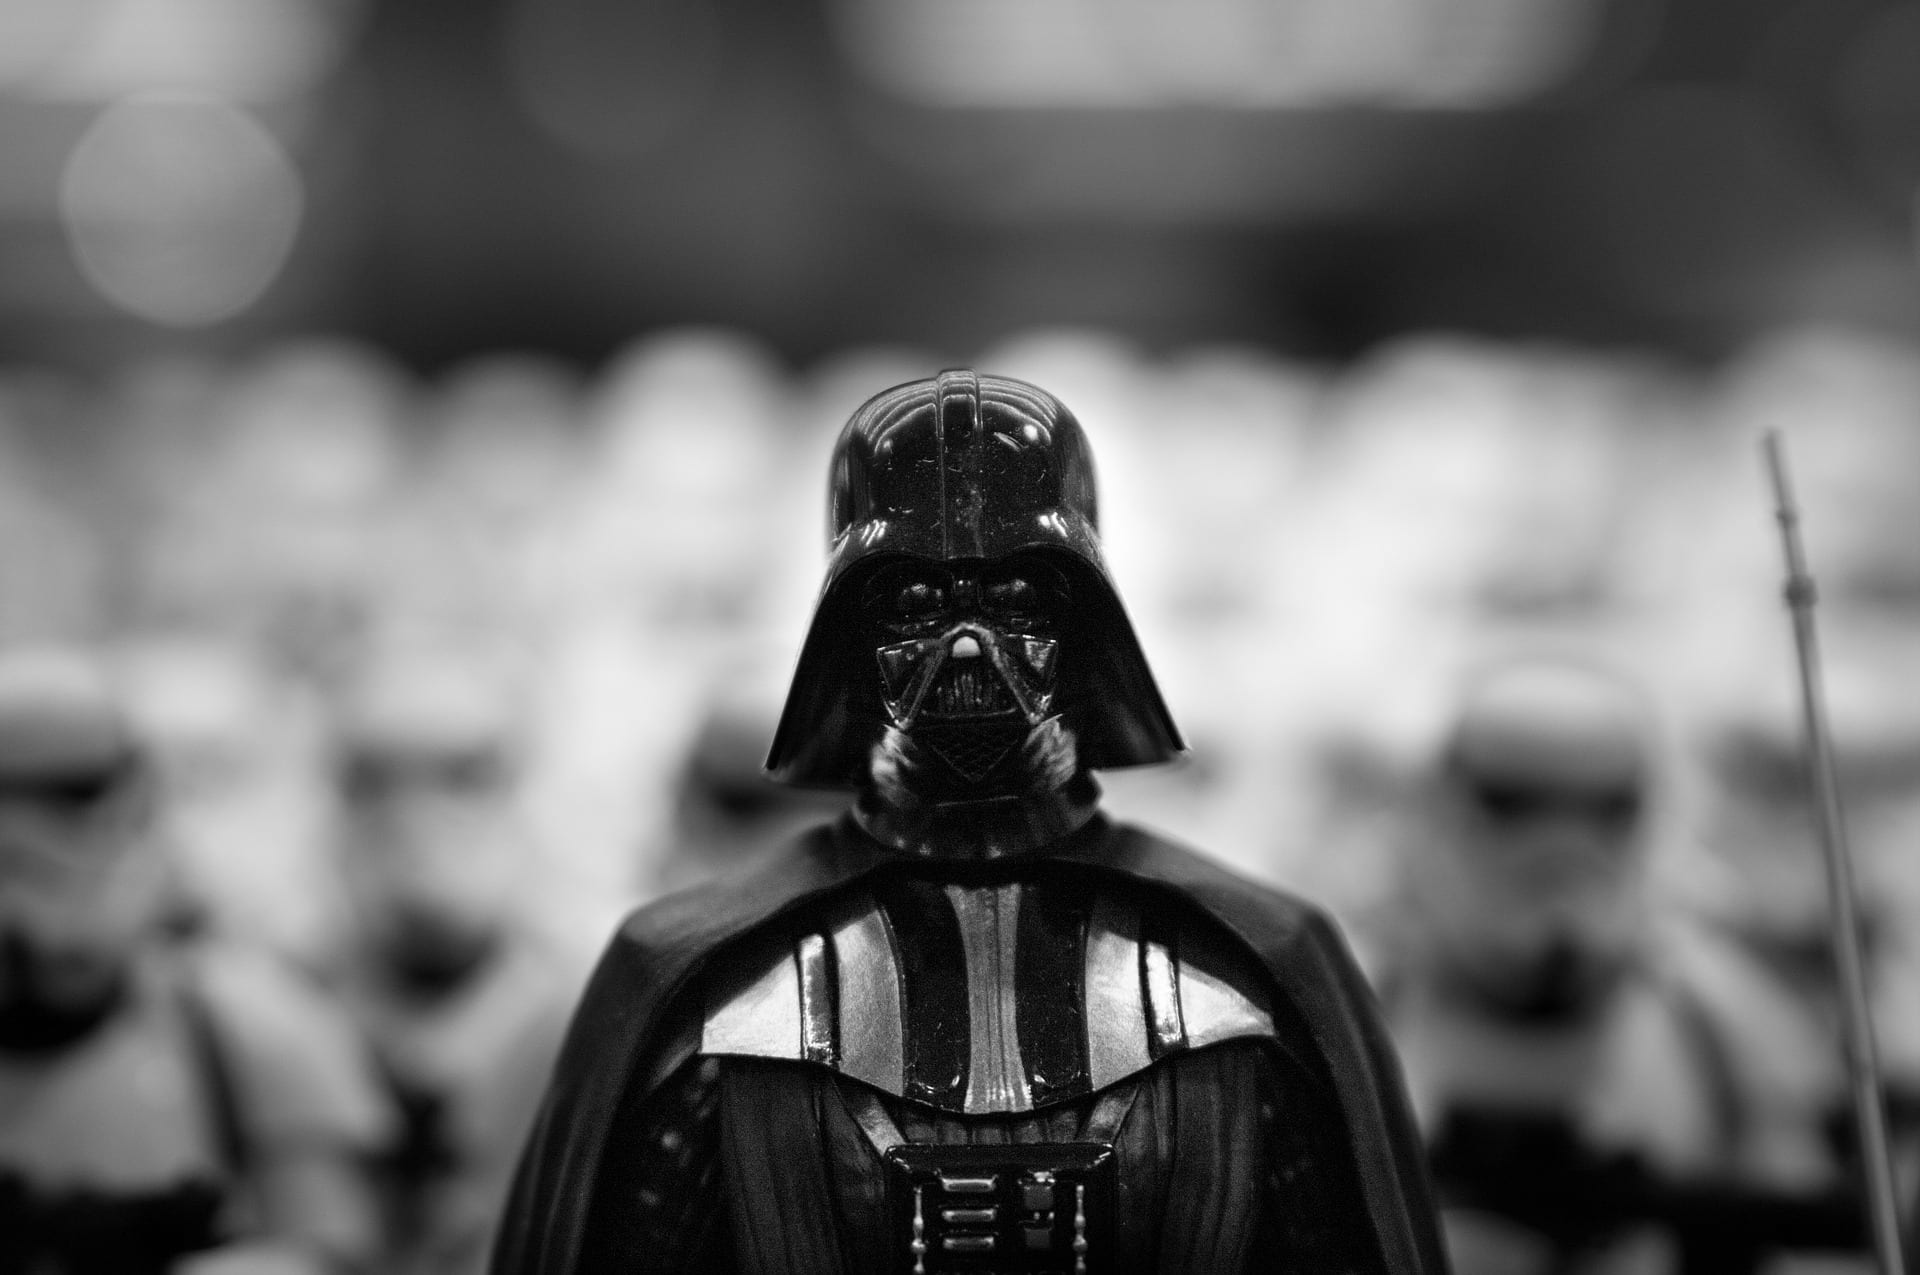 From the Liverpool Public Library: Join LPL in a galaxy far, far away